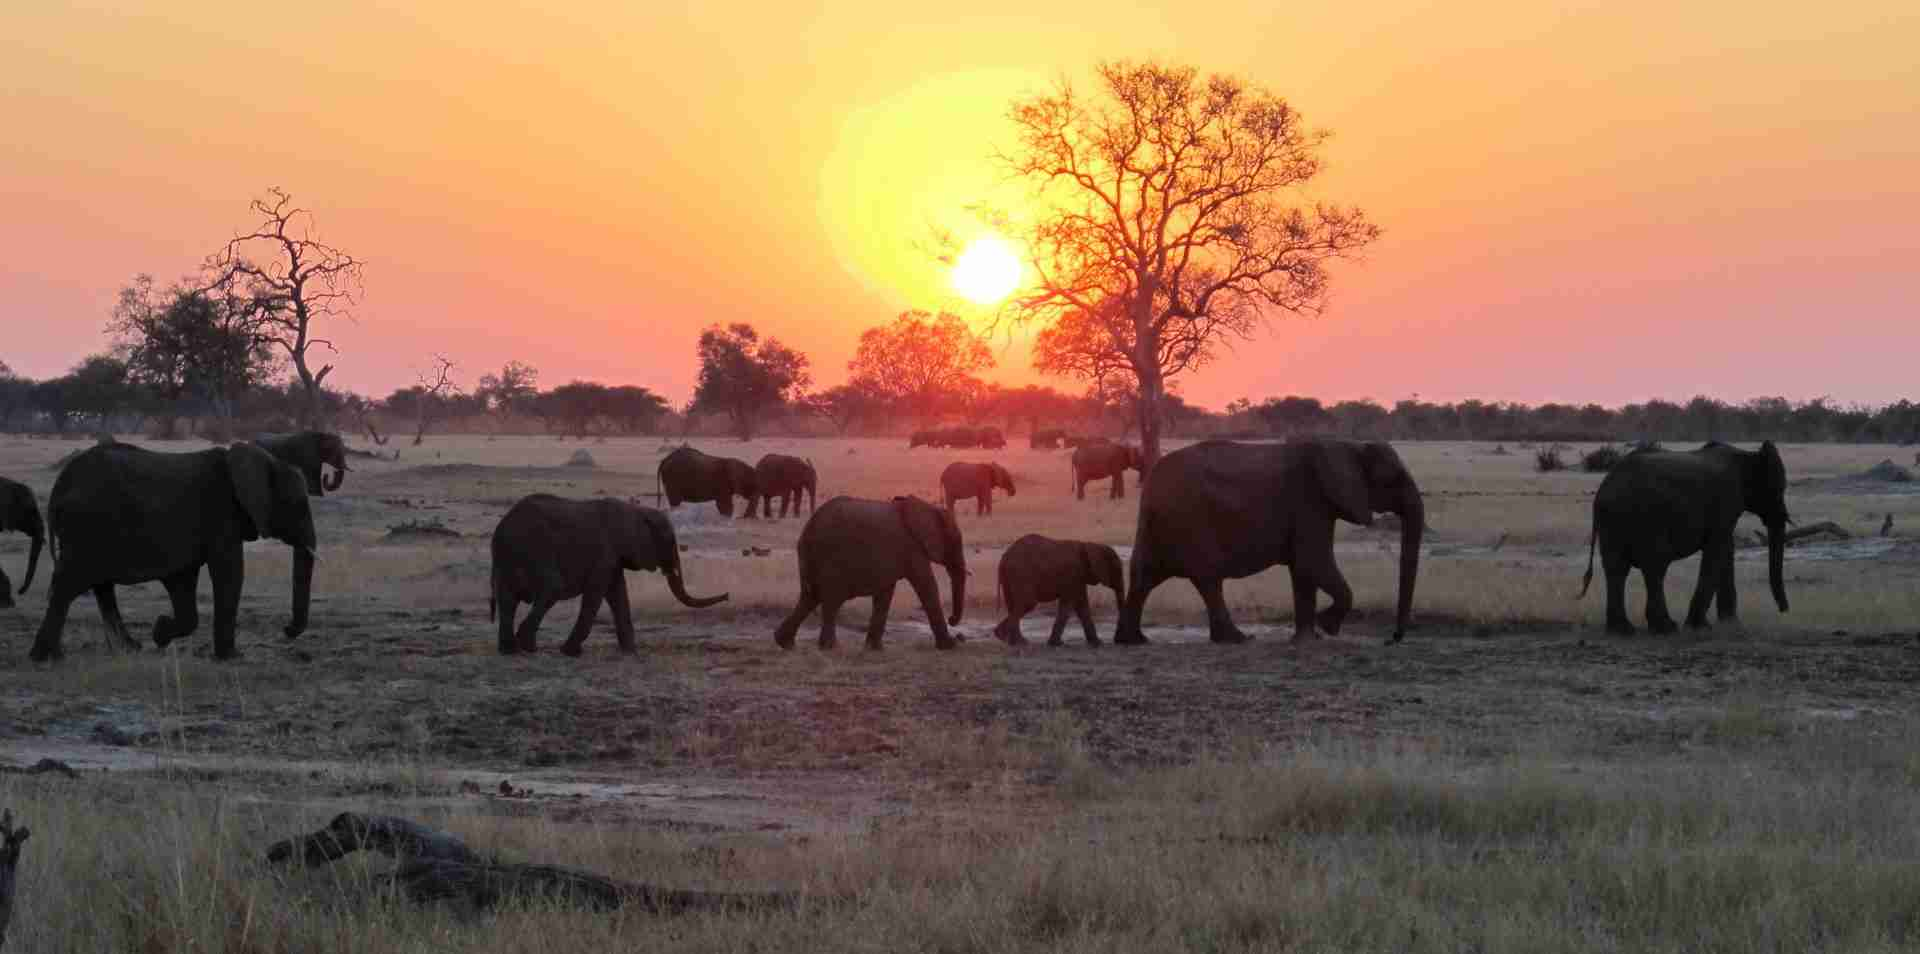 Hwange elephants at sunset